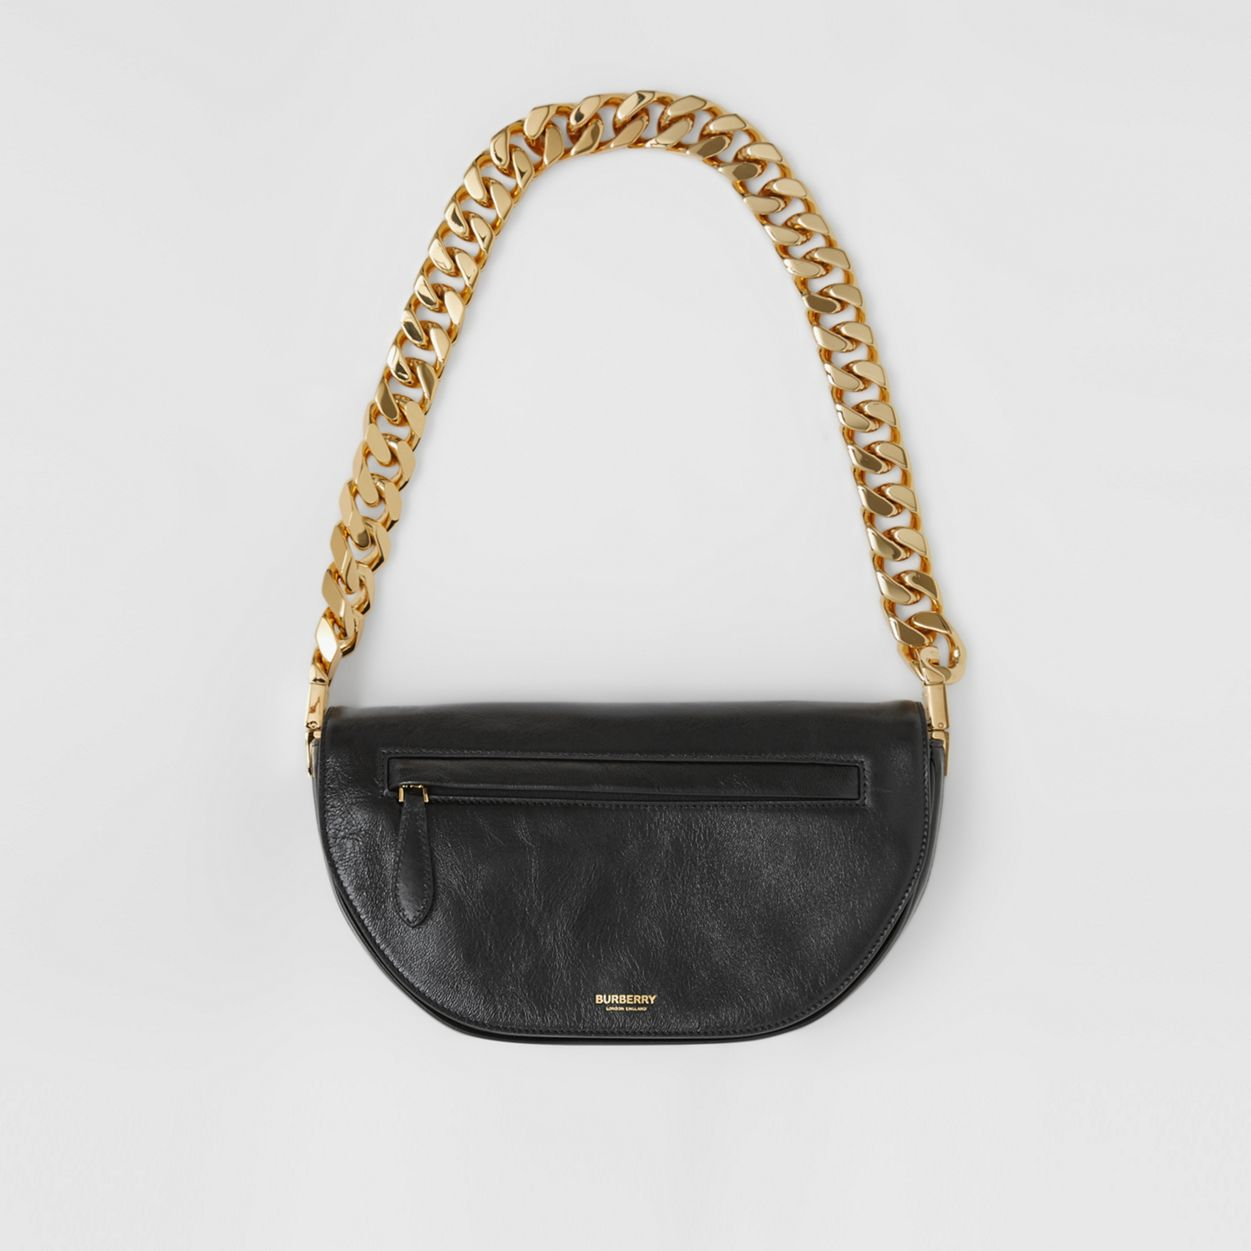 Small Lambskin Olympia Bag by Burberry, available on burberry.com for EUR1 Irina Shayk Bags Exact Product